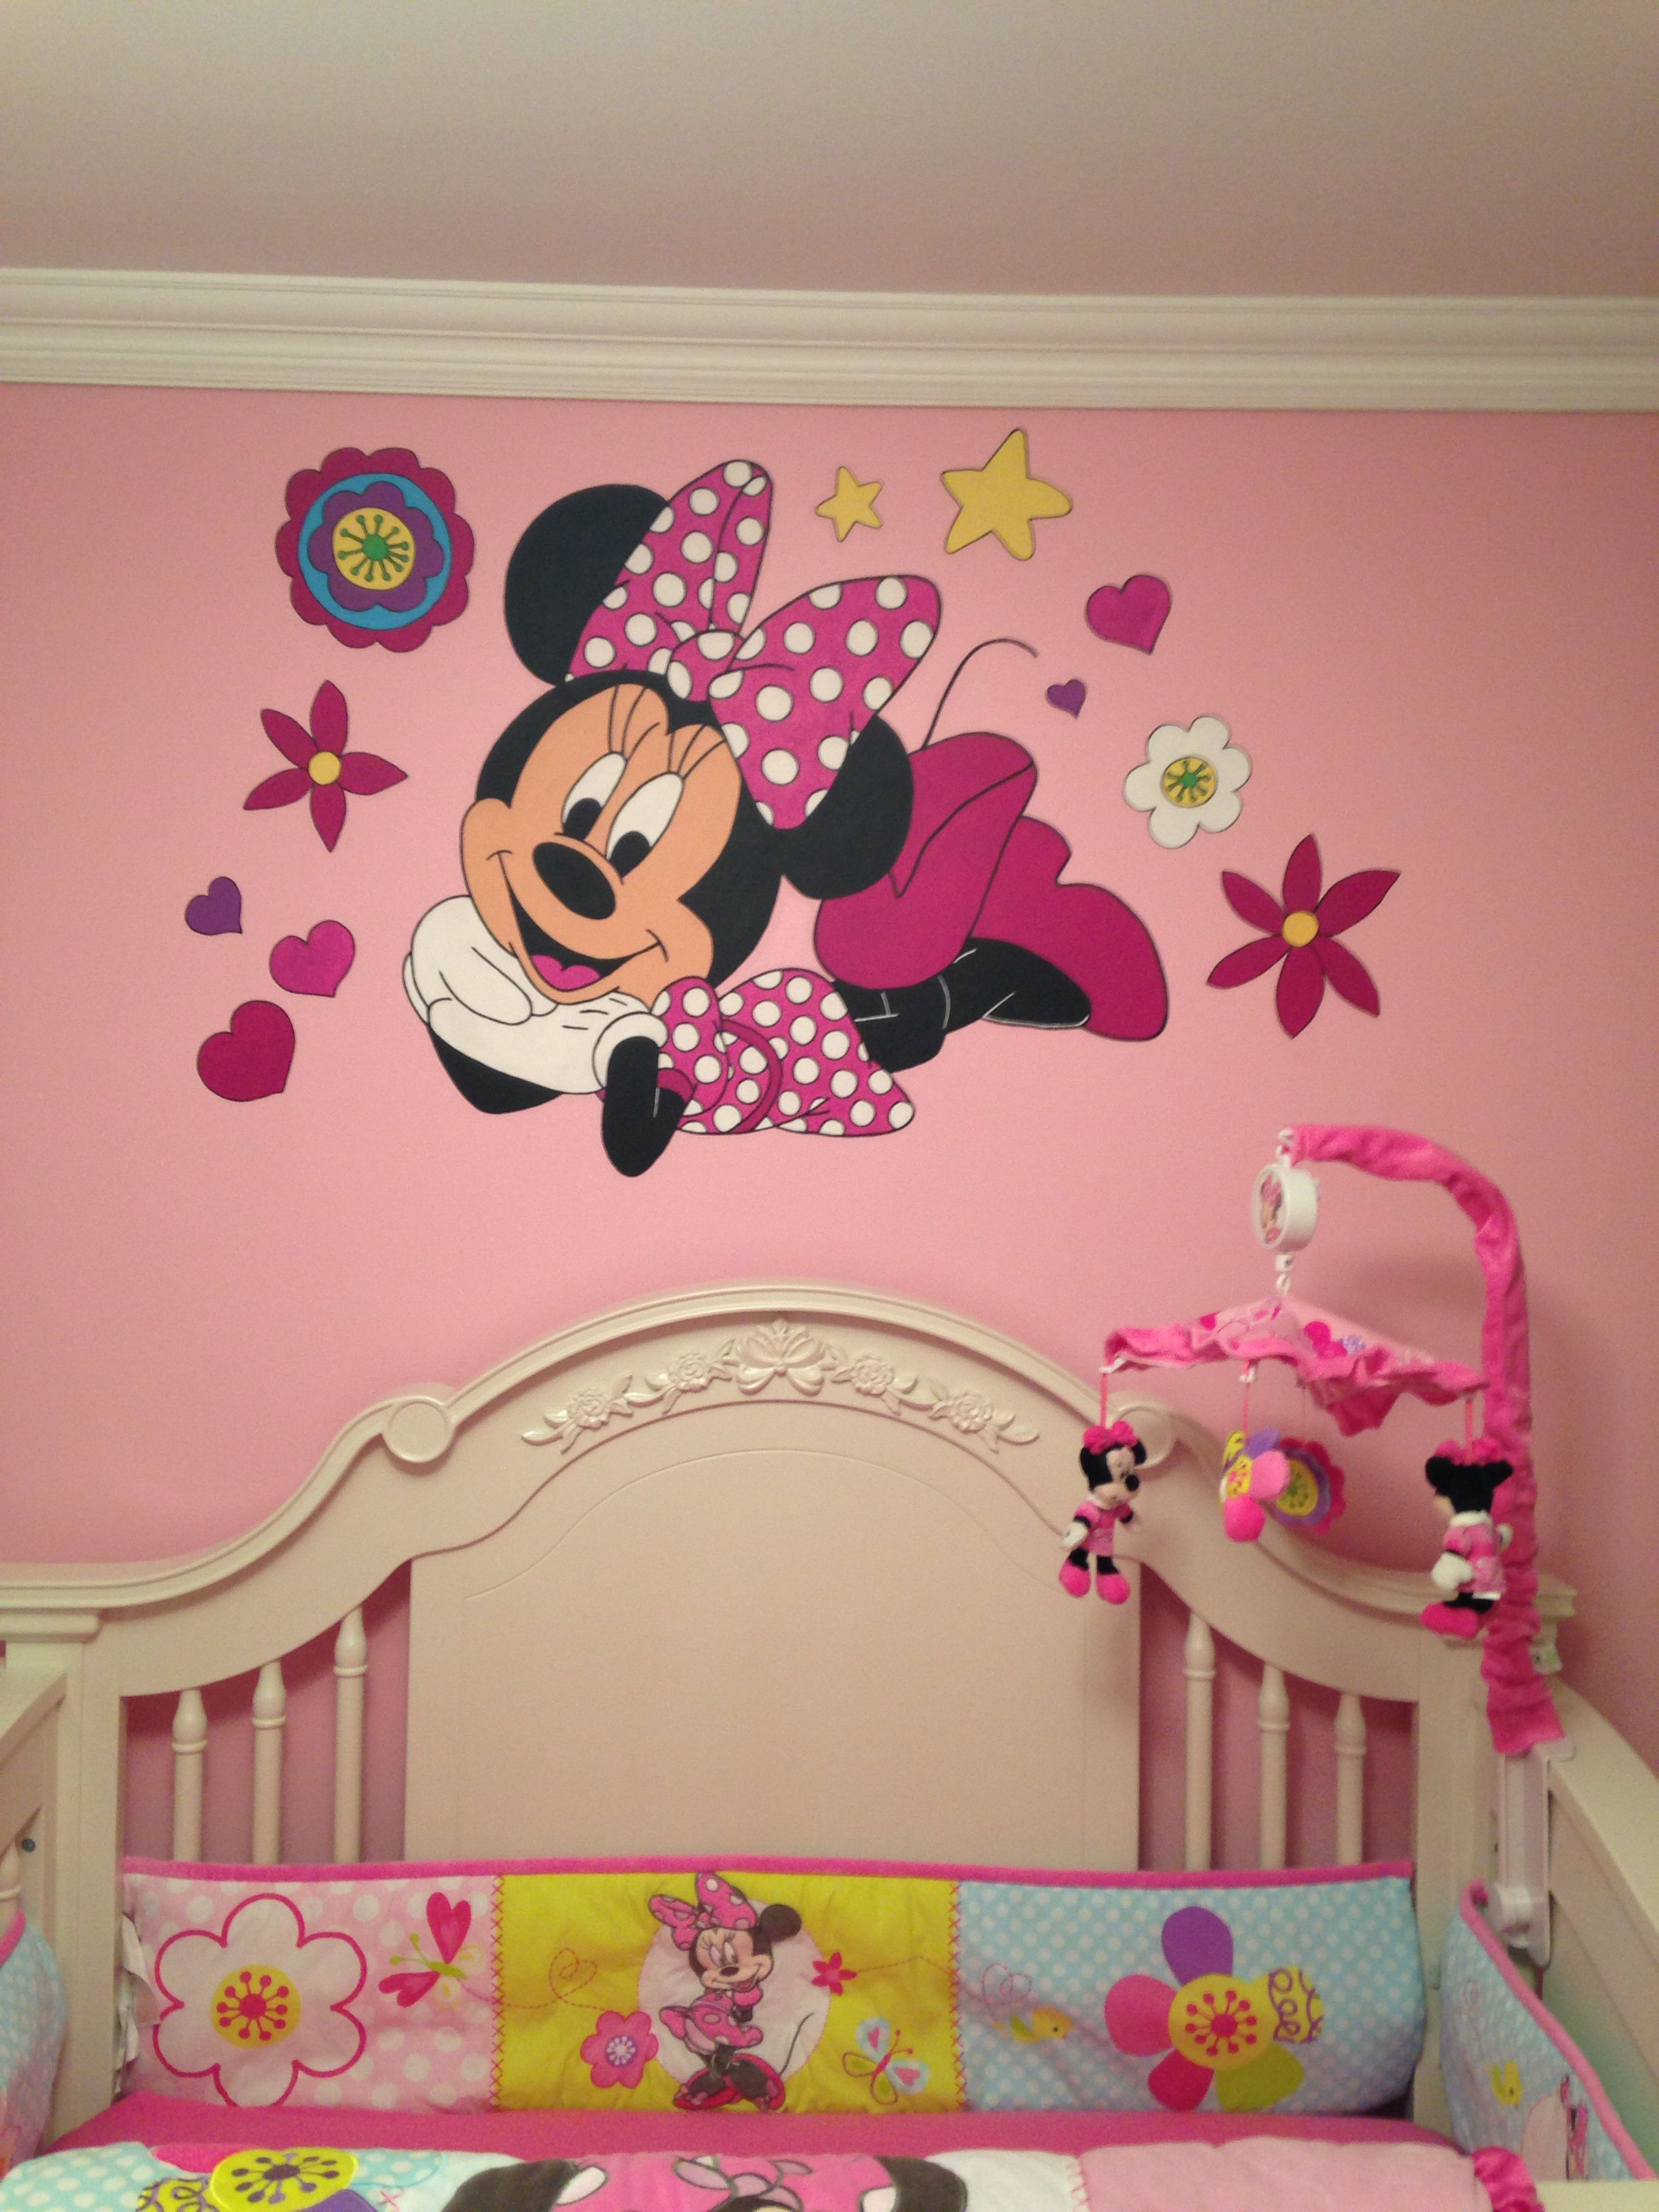 minnie mouse mural in baby nursery my stuff minnie mouse babyminnie mouse mural in baby nursery